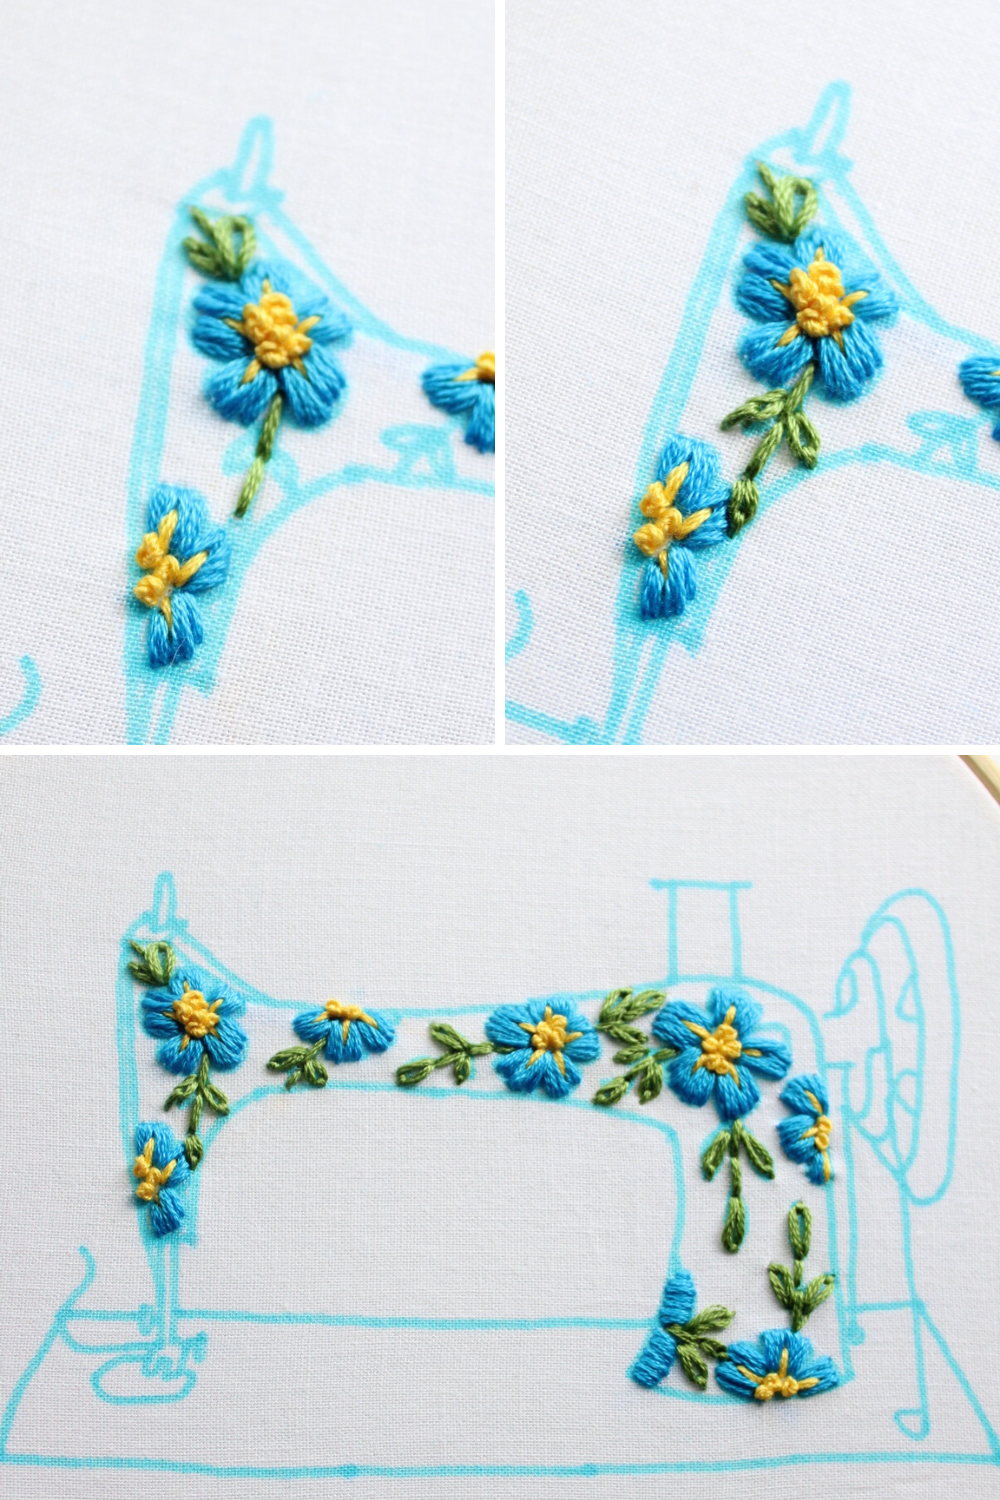 free embroidery pattern with instructions - how to embroider the flowers leaves